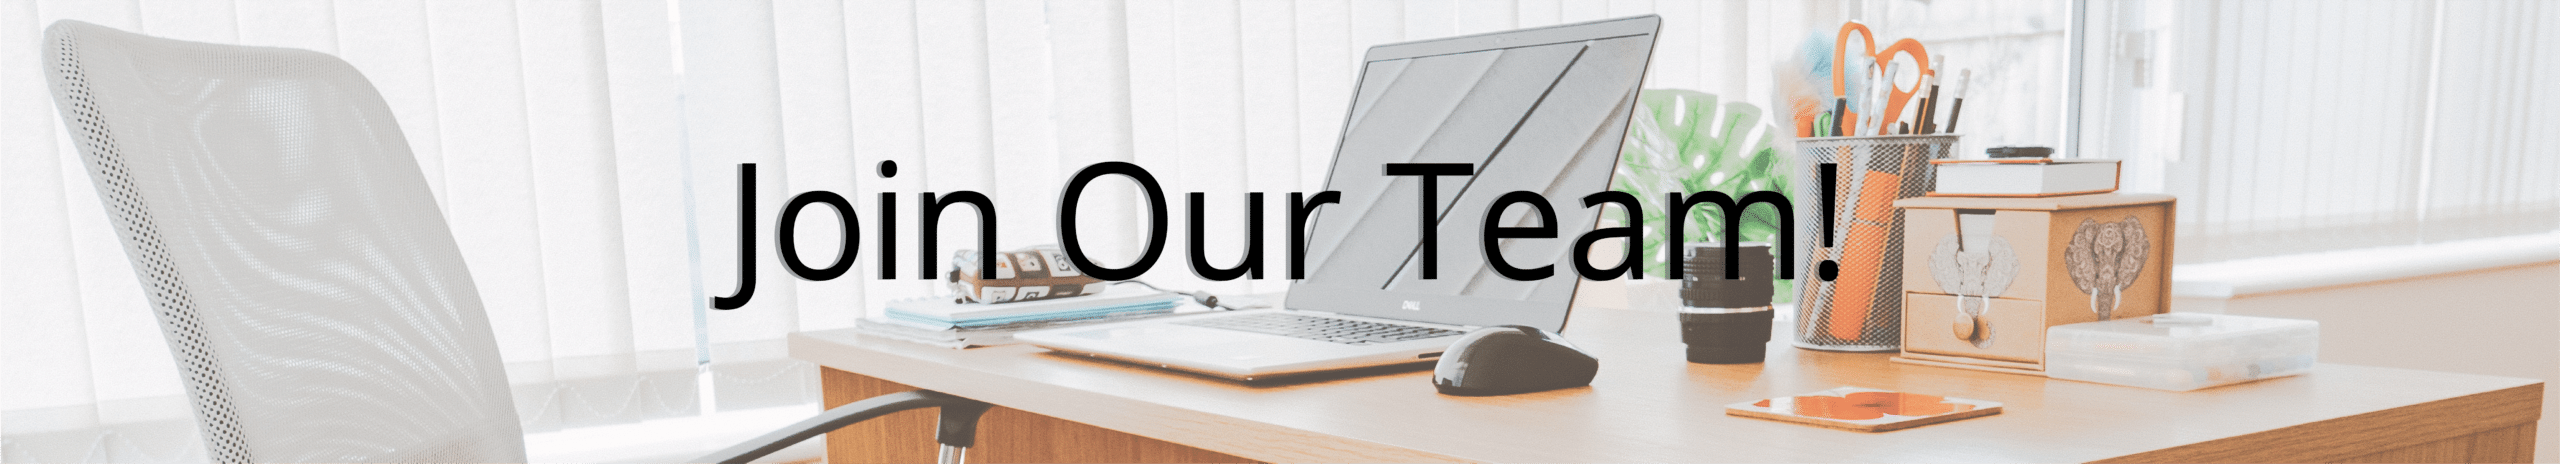 Join Our Team Header - an image of an organized desk with a computer and desk chair.